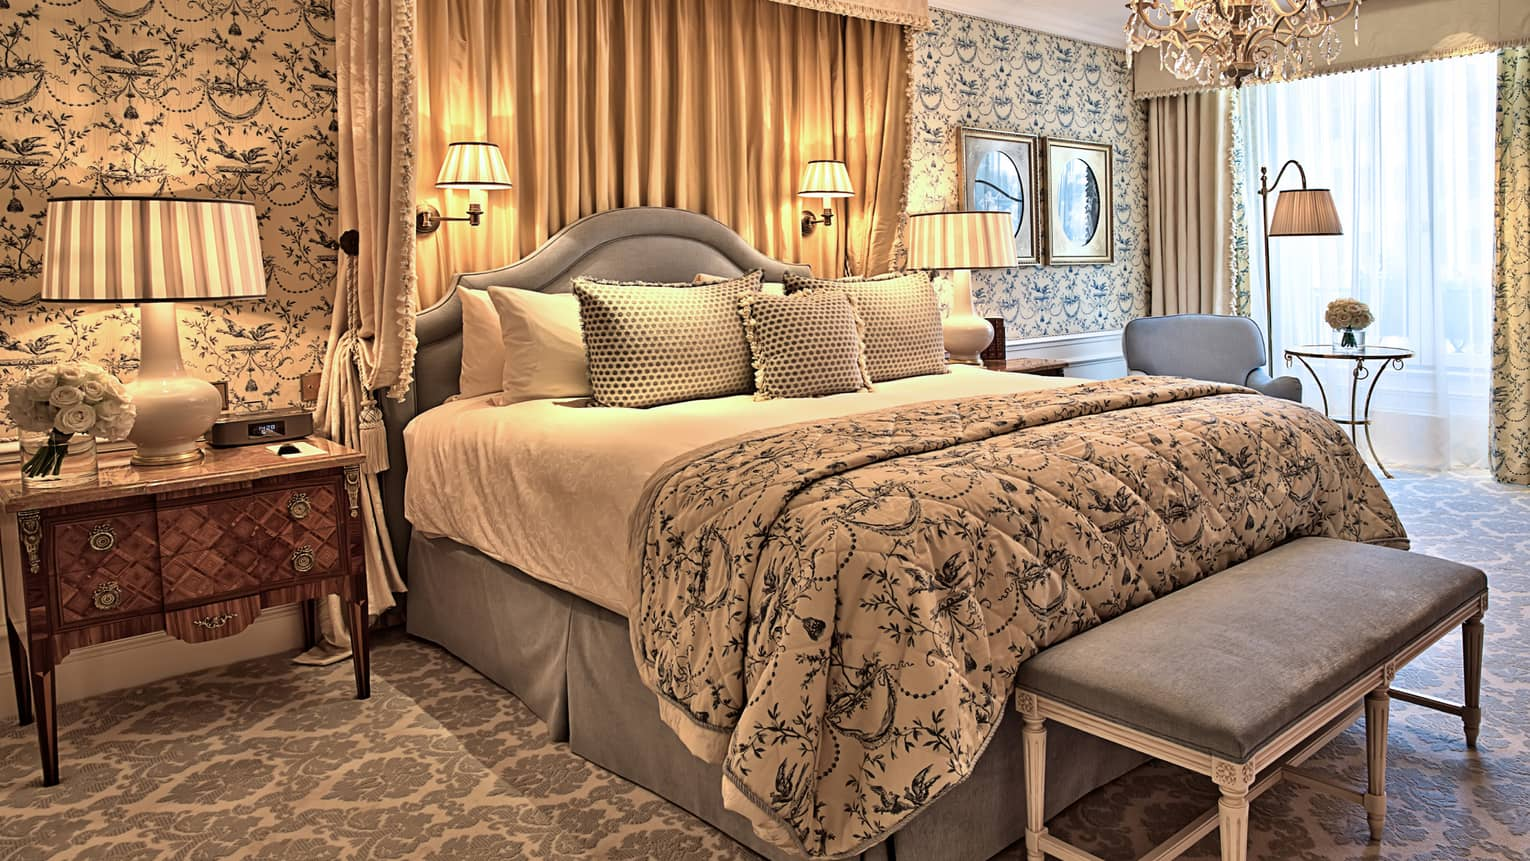 Parisian Suite bed with blue-and-white spread, headboard, draped canopy, antique-style wallpaper